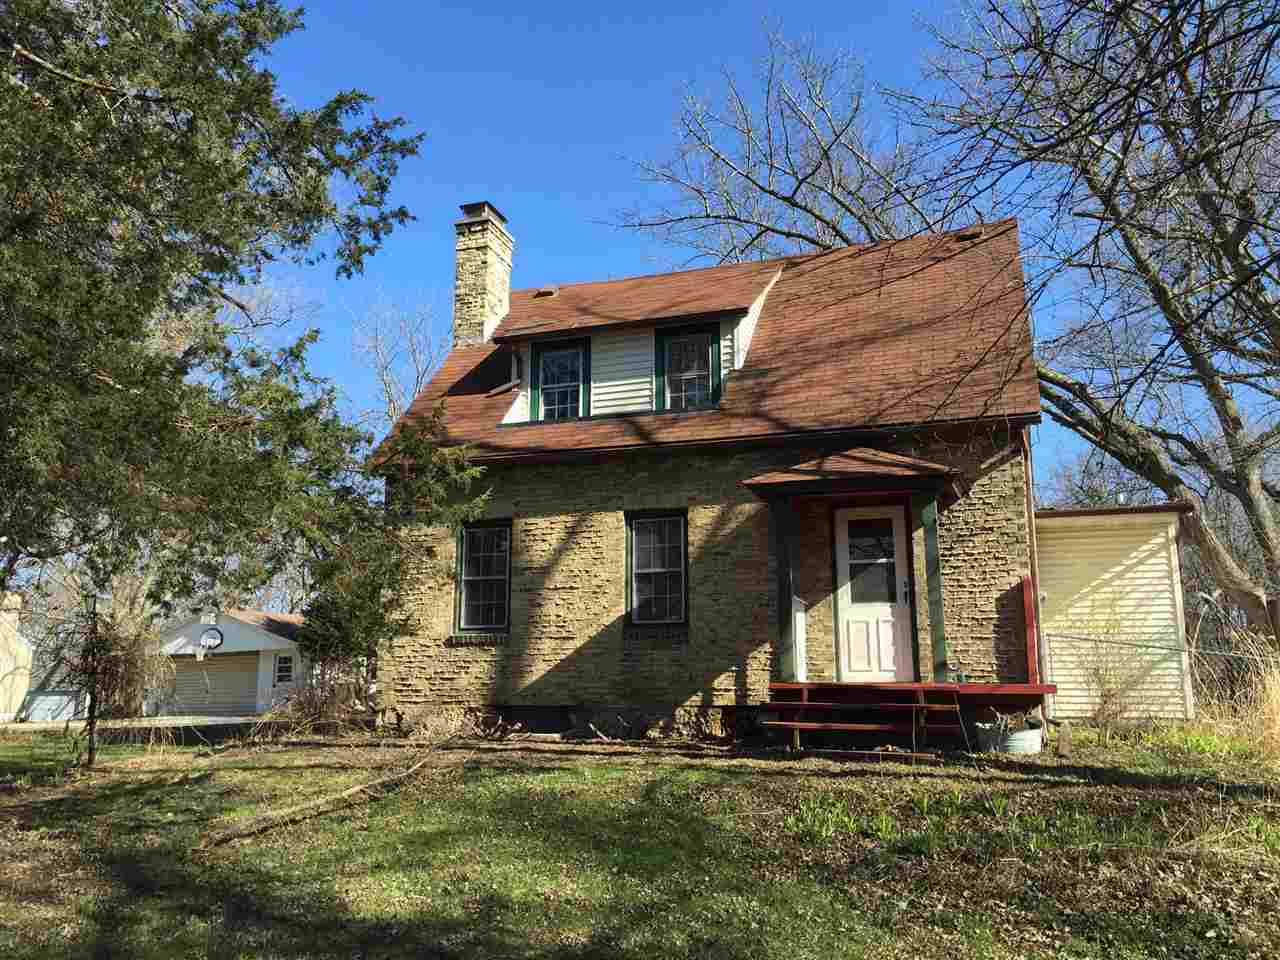 Private lot with over a half acre right in the City of Madison!  The house has hardwood floors and great character of an older home, but also includes an addition with a large open family room, spacious mudroom, and 2nd full bathroom.  New windows throughout.  Includes 2car garage and shed.  This property is eligible for the Freddie Mac First Look Initiative through 5/1/2016. Seller offering $500 credit for home warranty to O/O buyers.  All measurements are approx and buyer should verify for themselves.